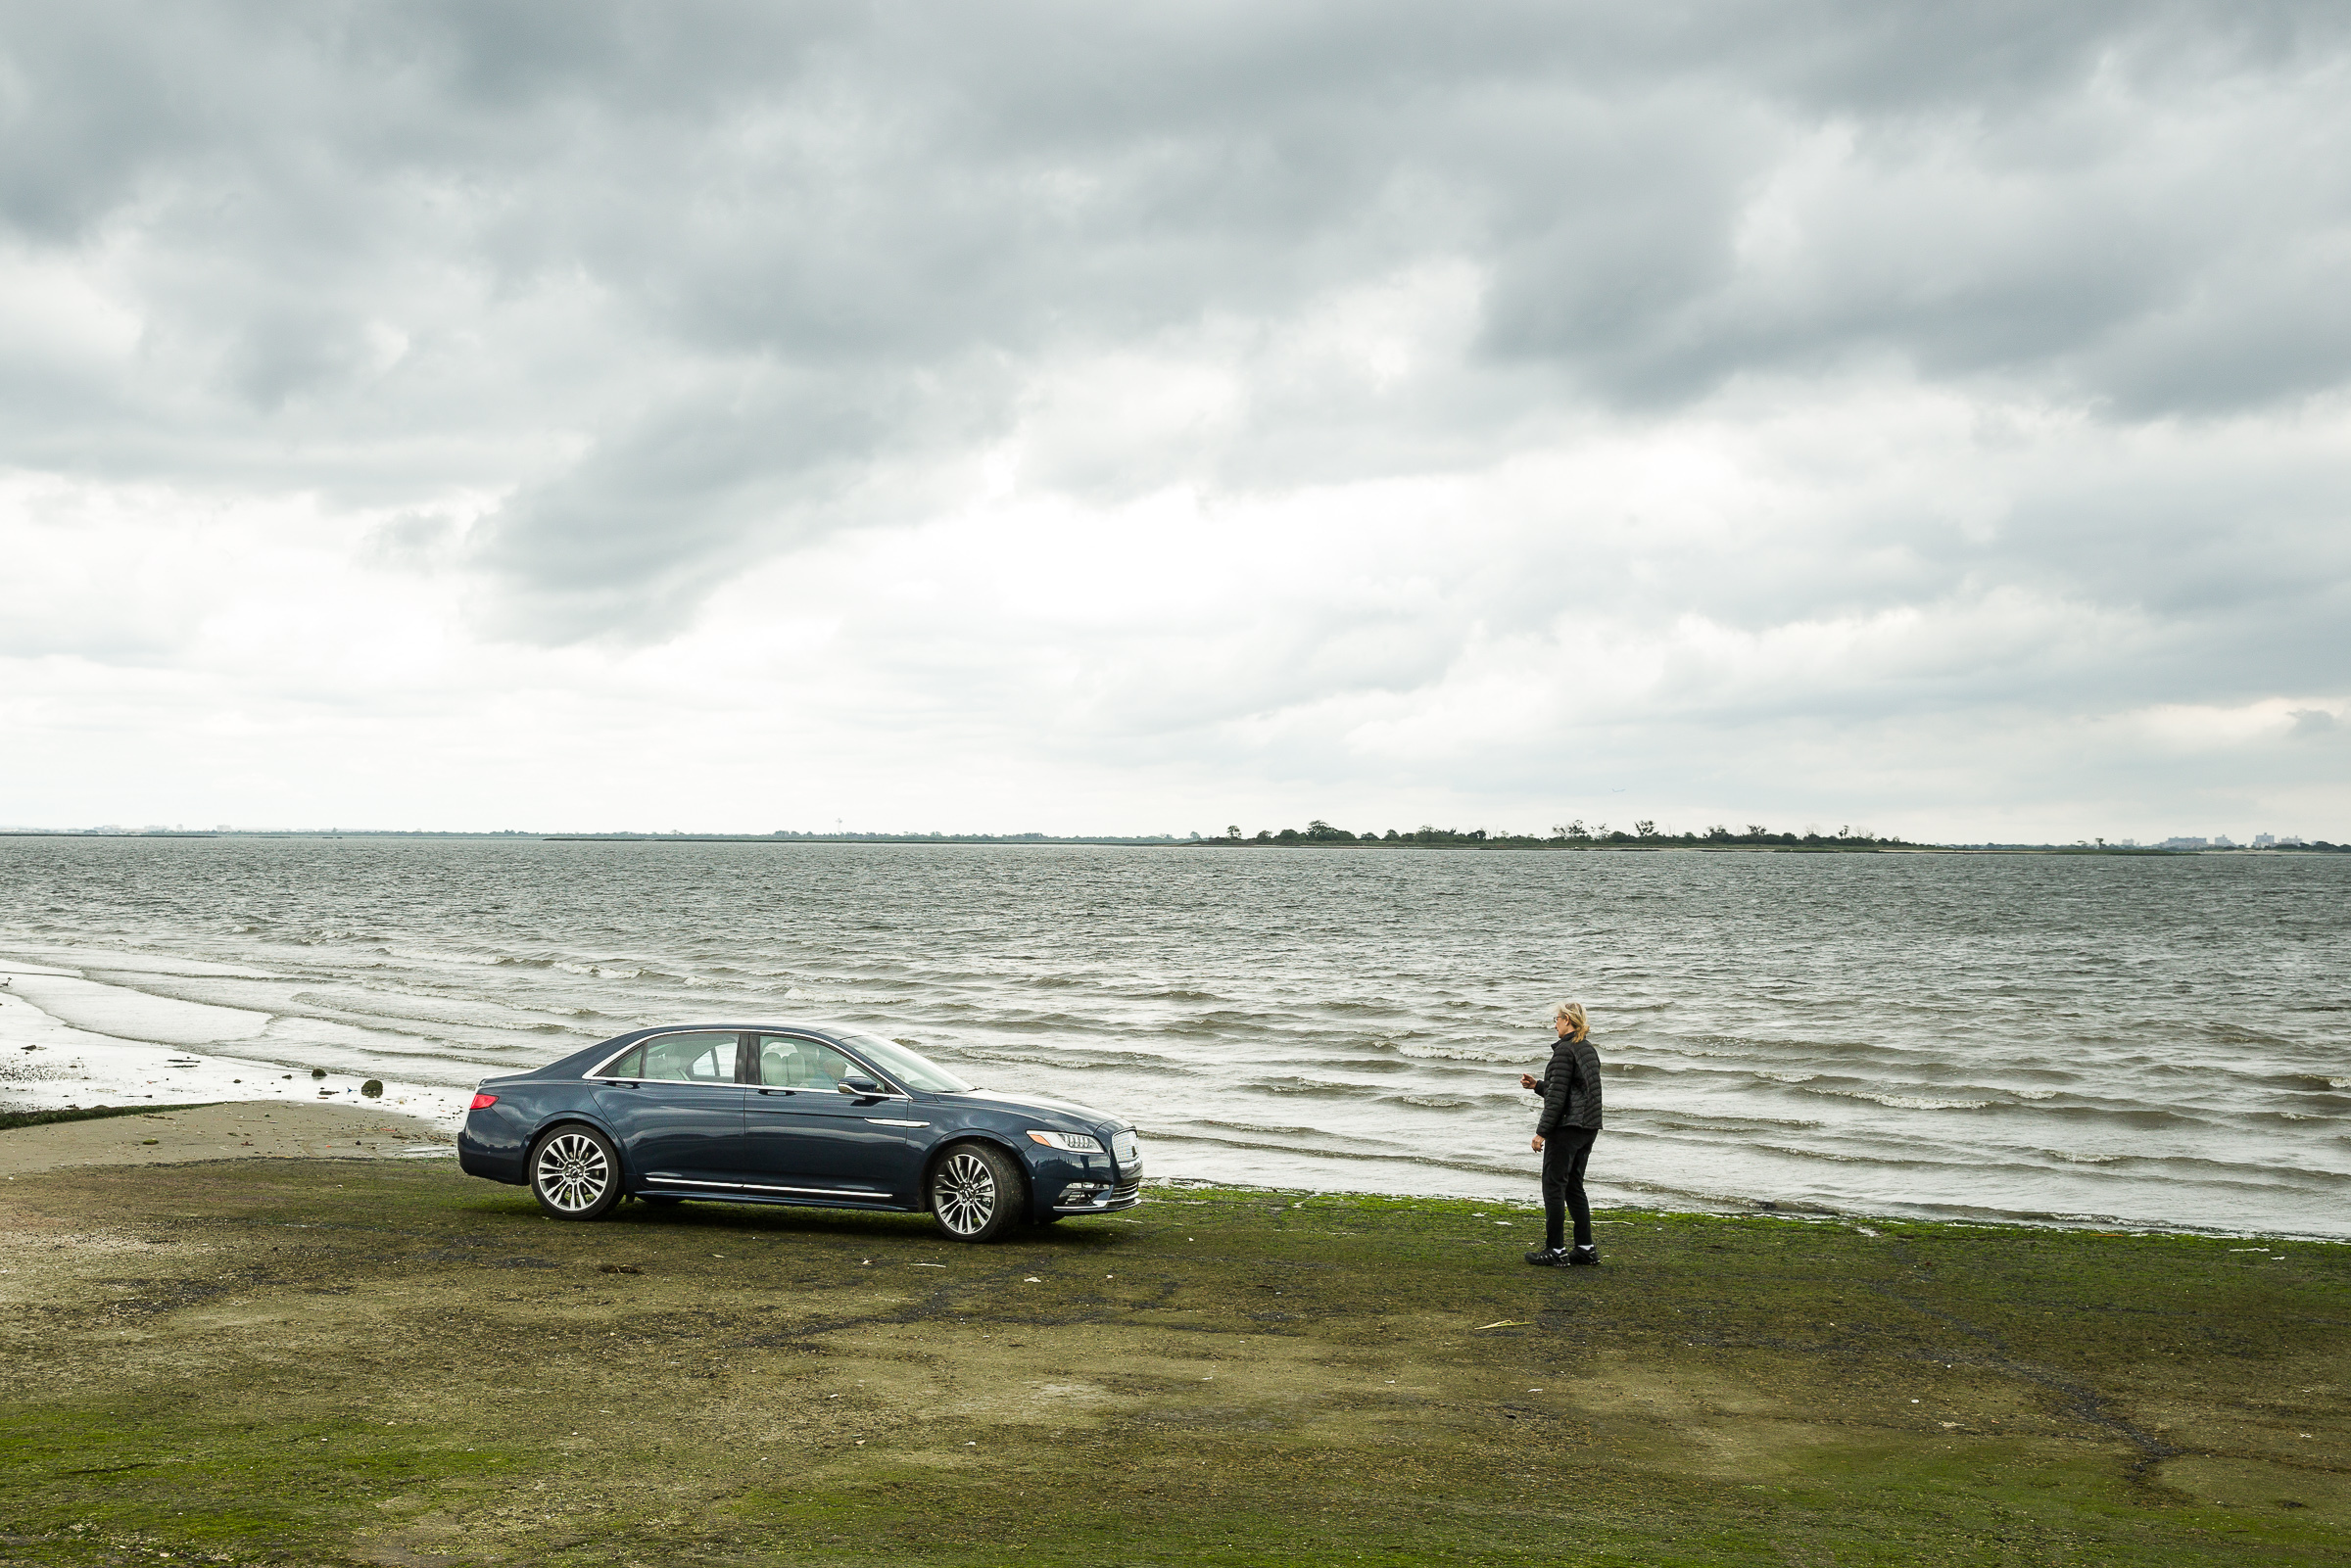 Acclaimed photographer Annie Leibovitz called on memories of childhood trips and the romance of the open road as inspiration for a series of photographs to introduce the highly anticipated 2017 Lincoln Continental. (Photo: Business Wire)